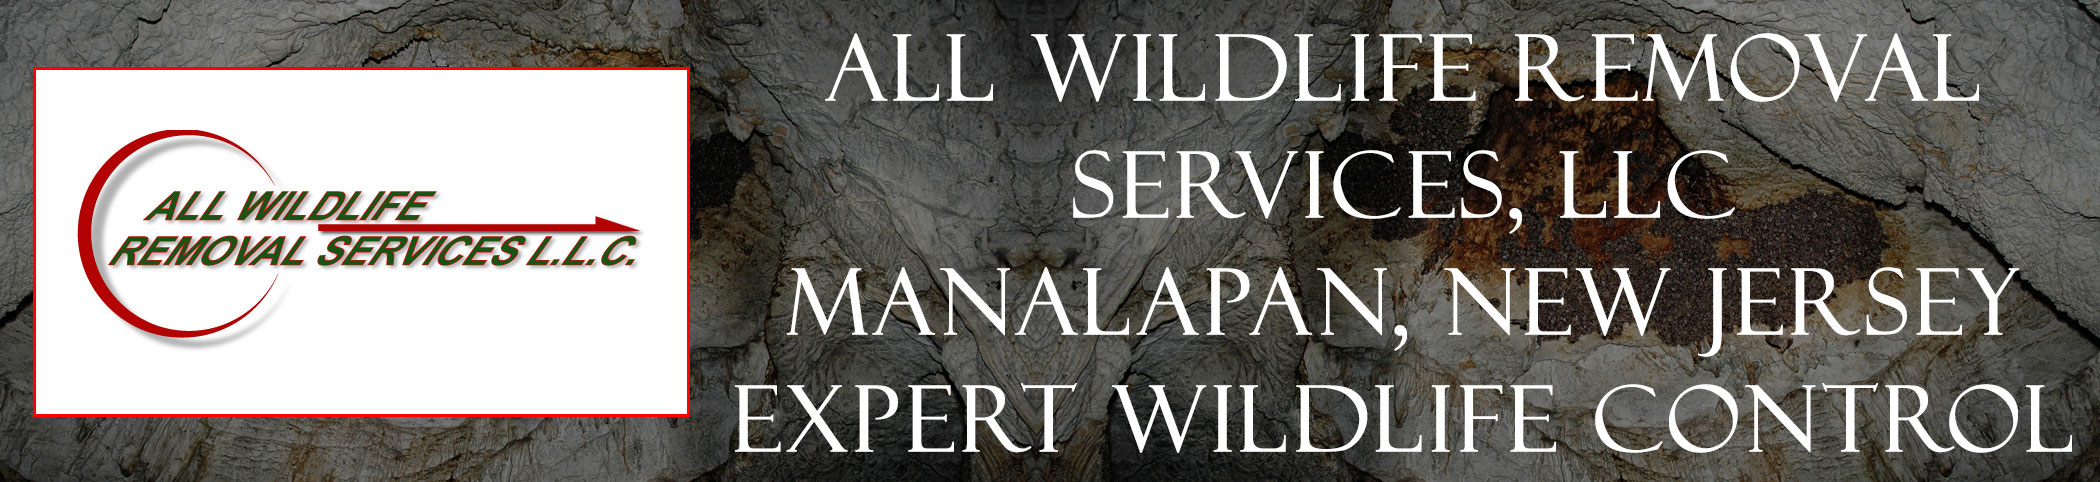 all-wildlife-removal-services-Manalapan-new-jersey-header